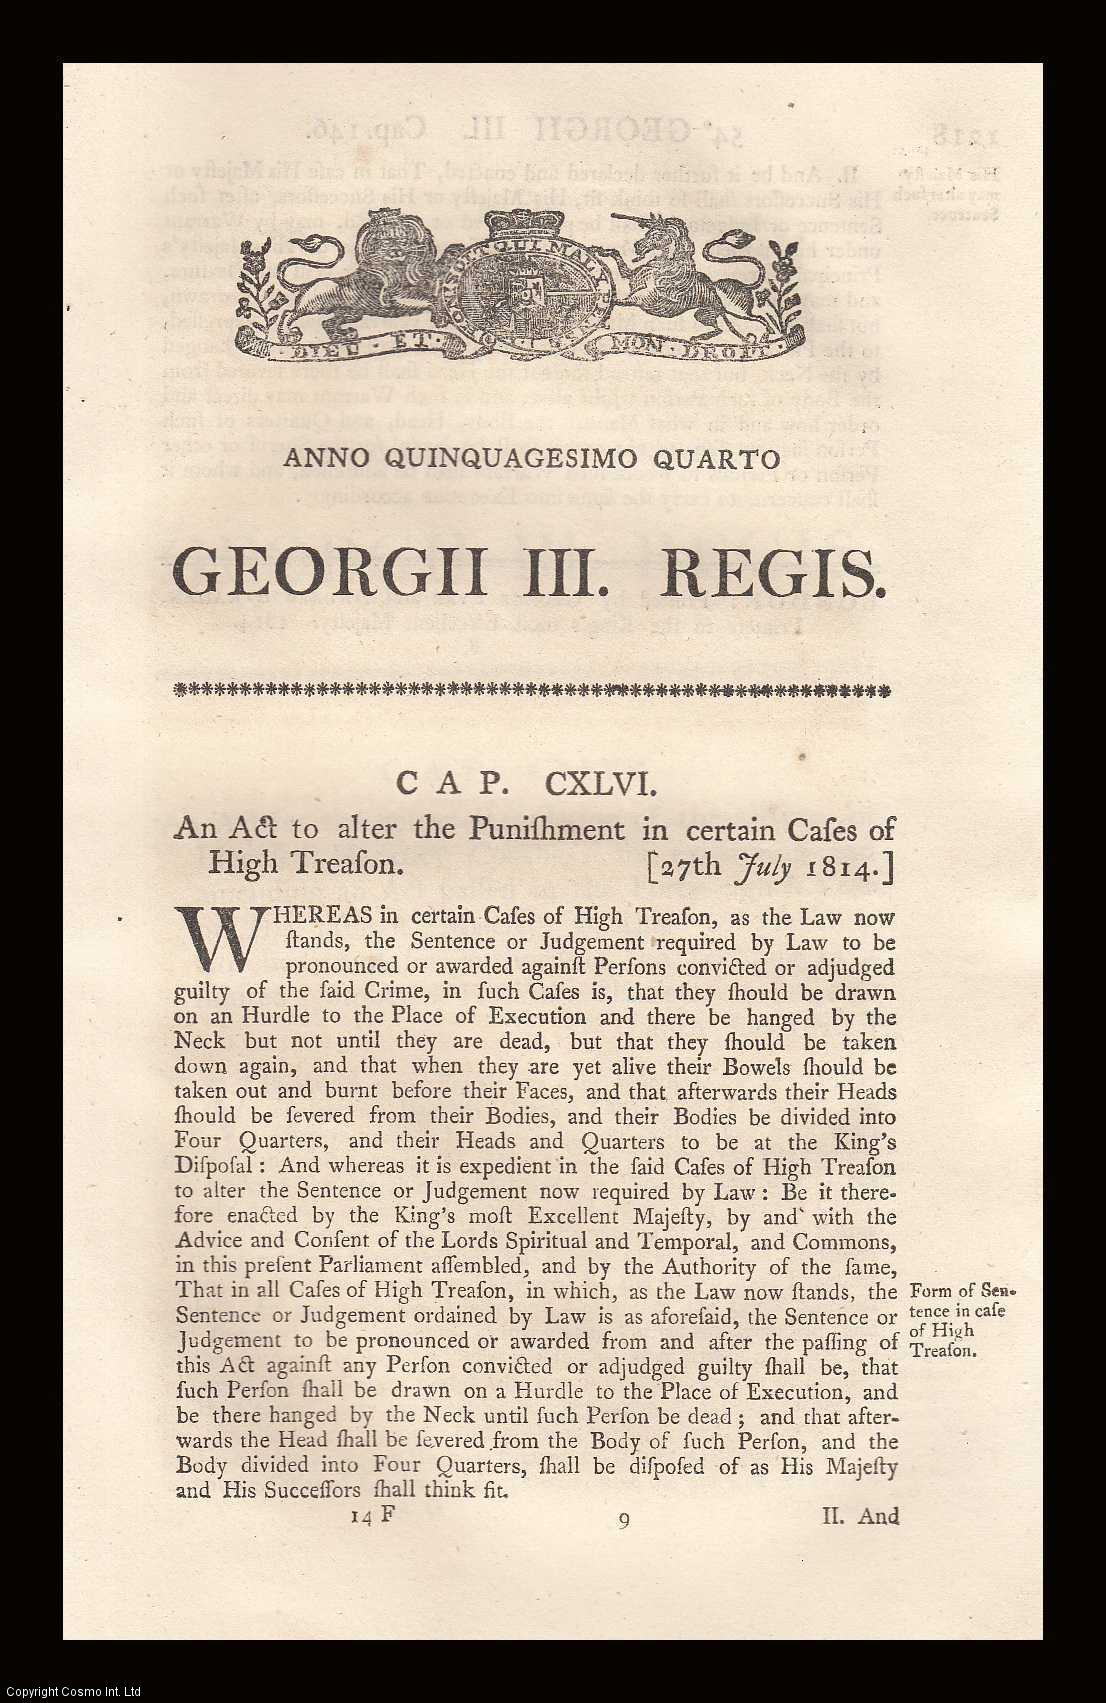 KING GEORGE III - Treason Act 1814 (c.146. 54 Geo. 3). An Act to alter the Punishment in certain Cases of High Treason.